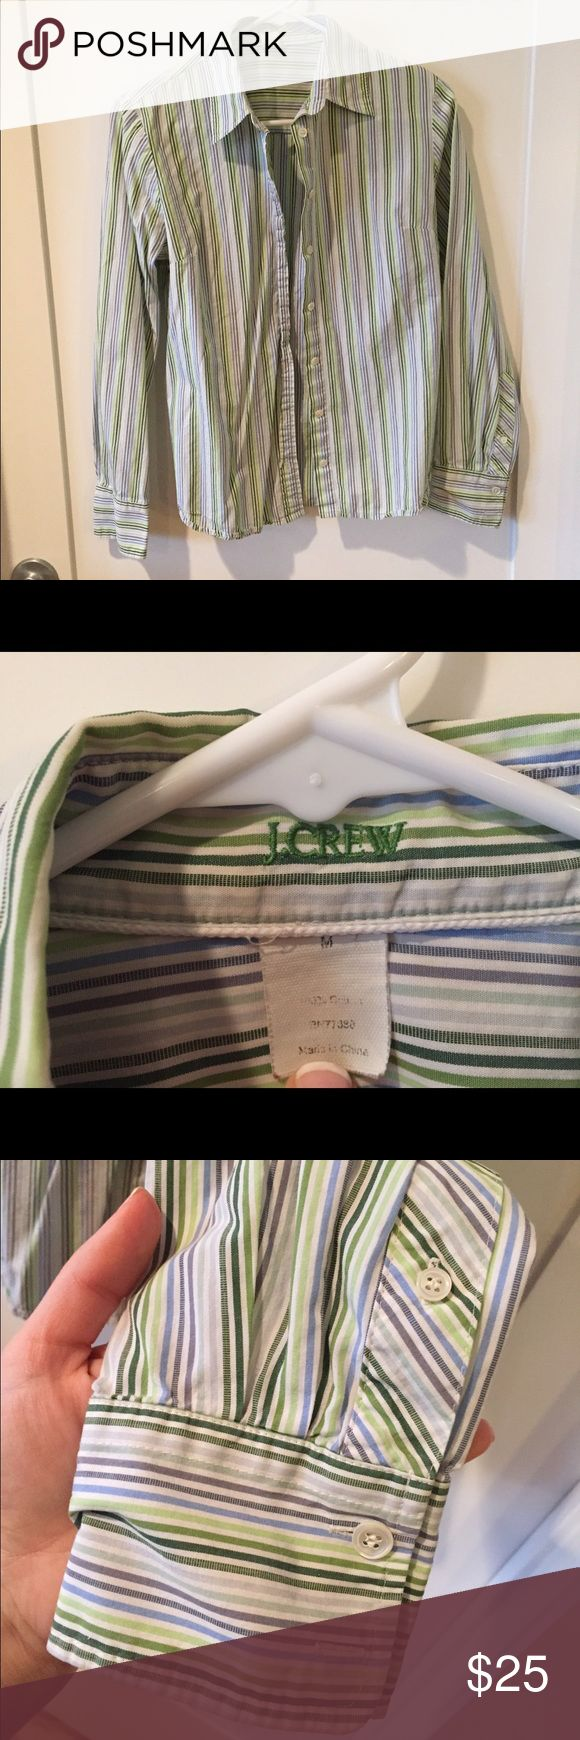 100% cotton blue & green striped button-down shirt Blue, green, & grey vertical-stripe 100% cotton button-down shirt by J. Crew.  Slim M.  Princess seams along back make for gorgeous fit.  Perfect under a well-fitted grey suit! J. Crew Tops Button Down Shirts